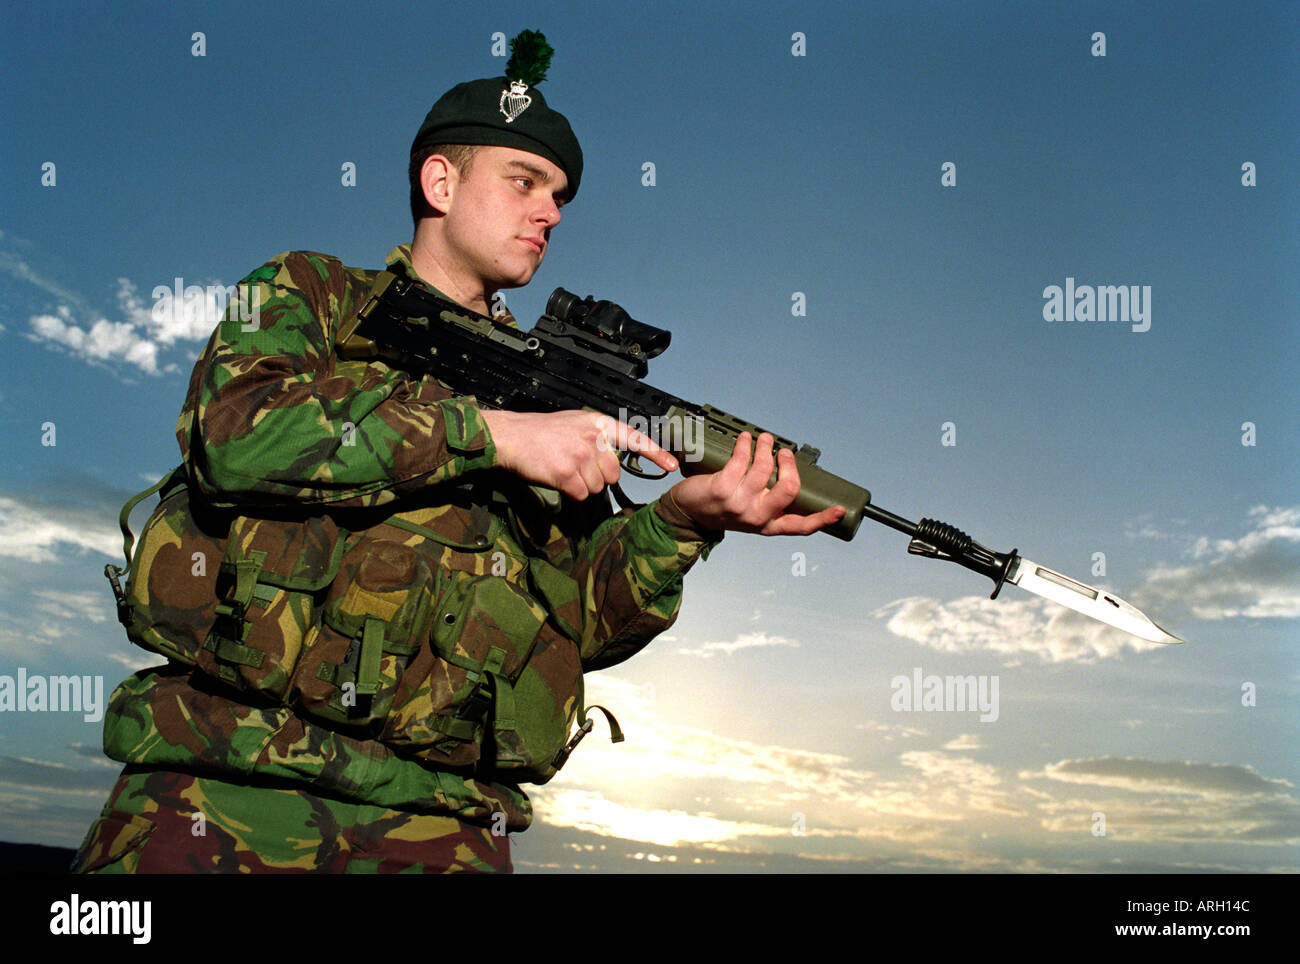 Members of the British Army on exercise - Stock Image